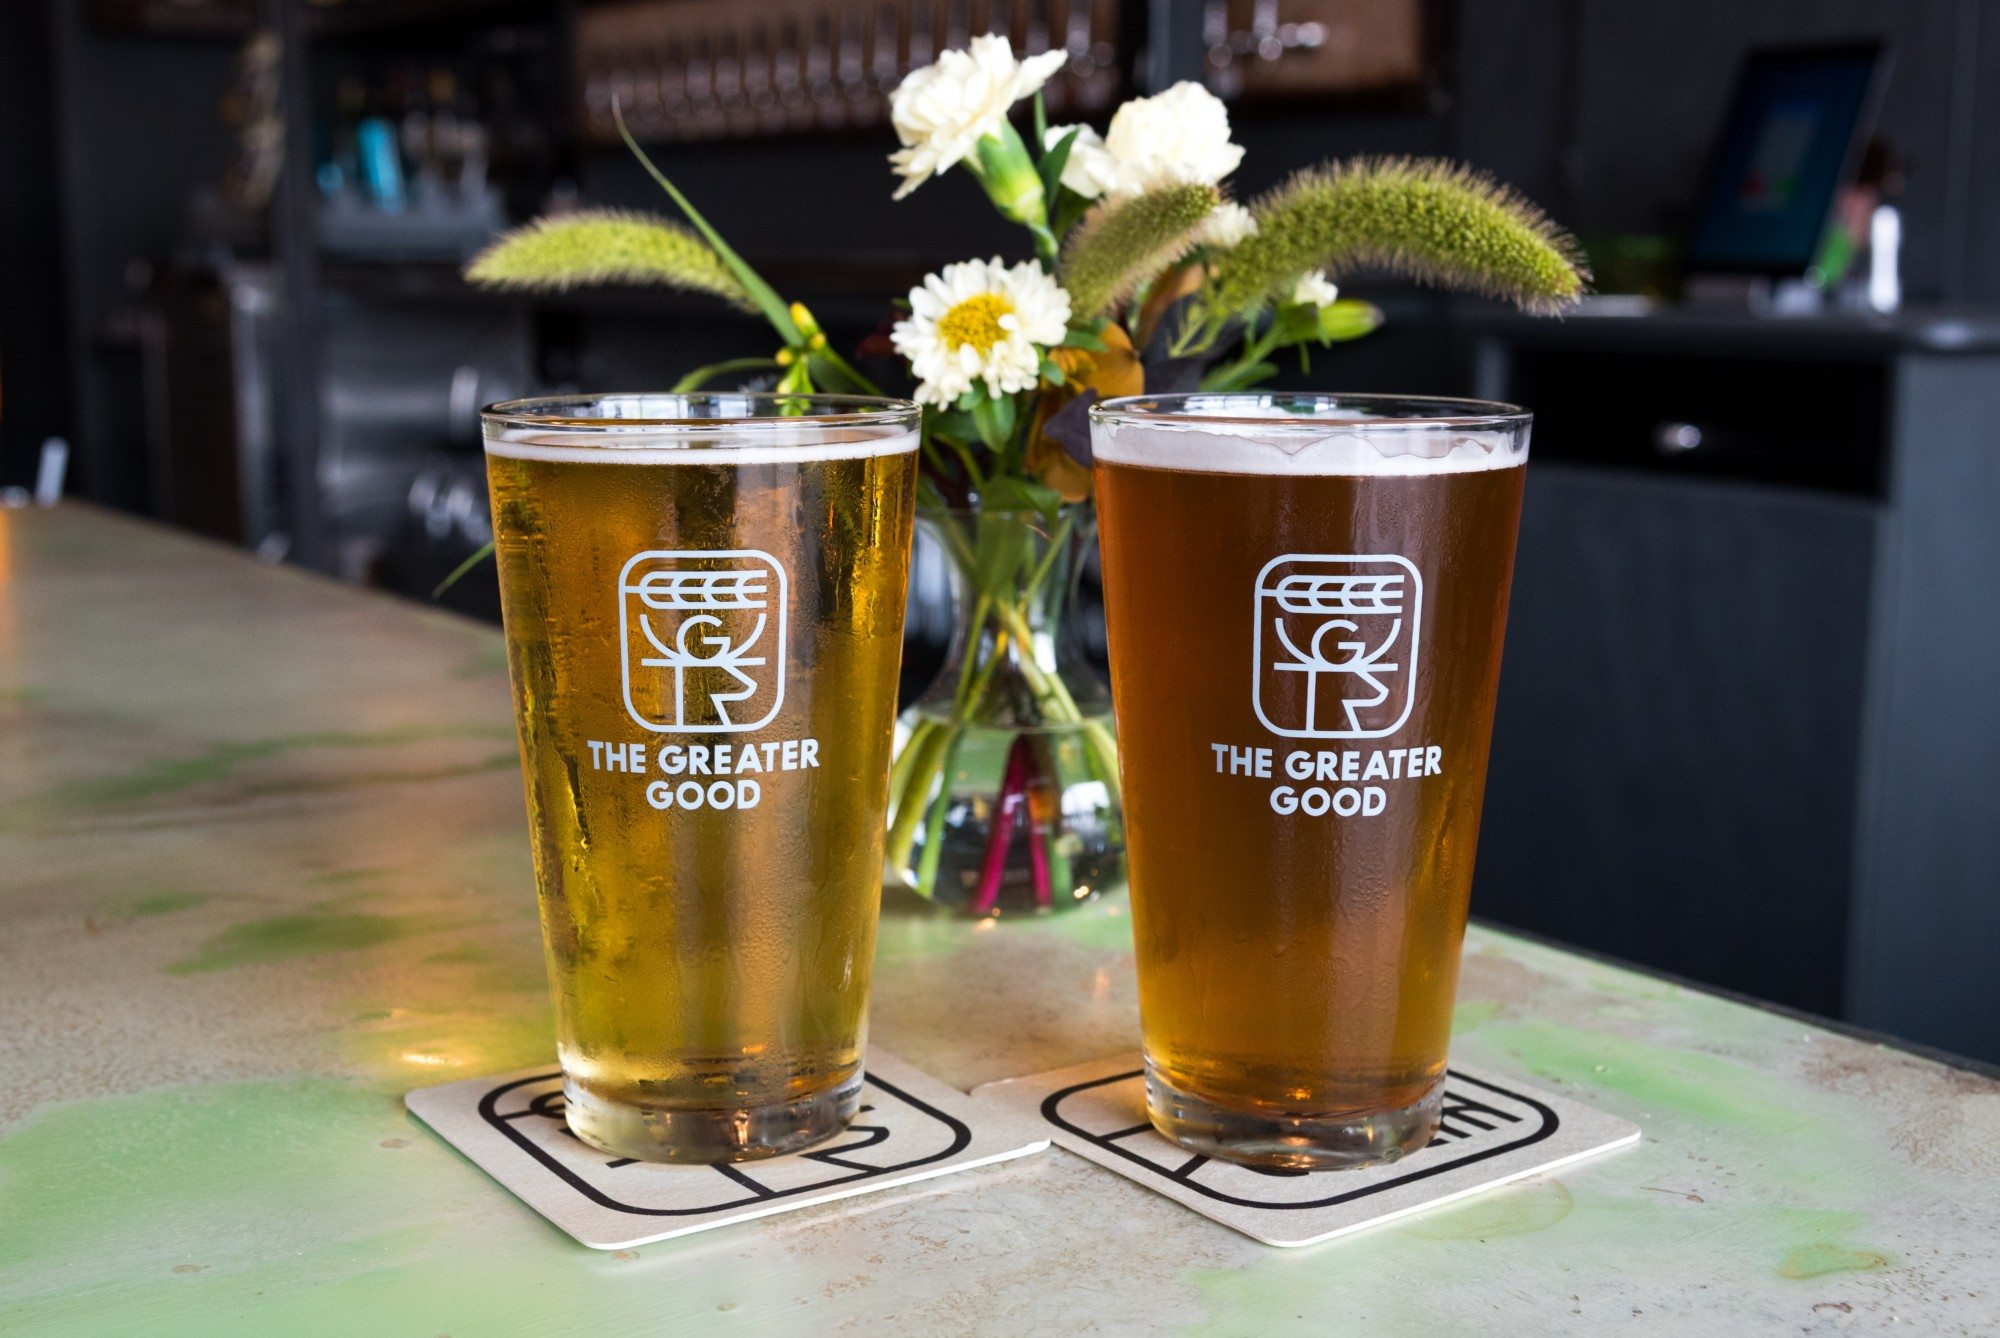 toronto-restaurants-bars-the-greater-good-beer-wallace-emerson-draught-pints